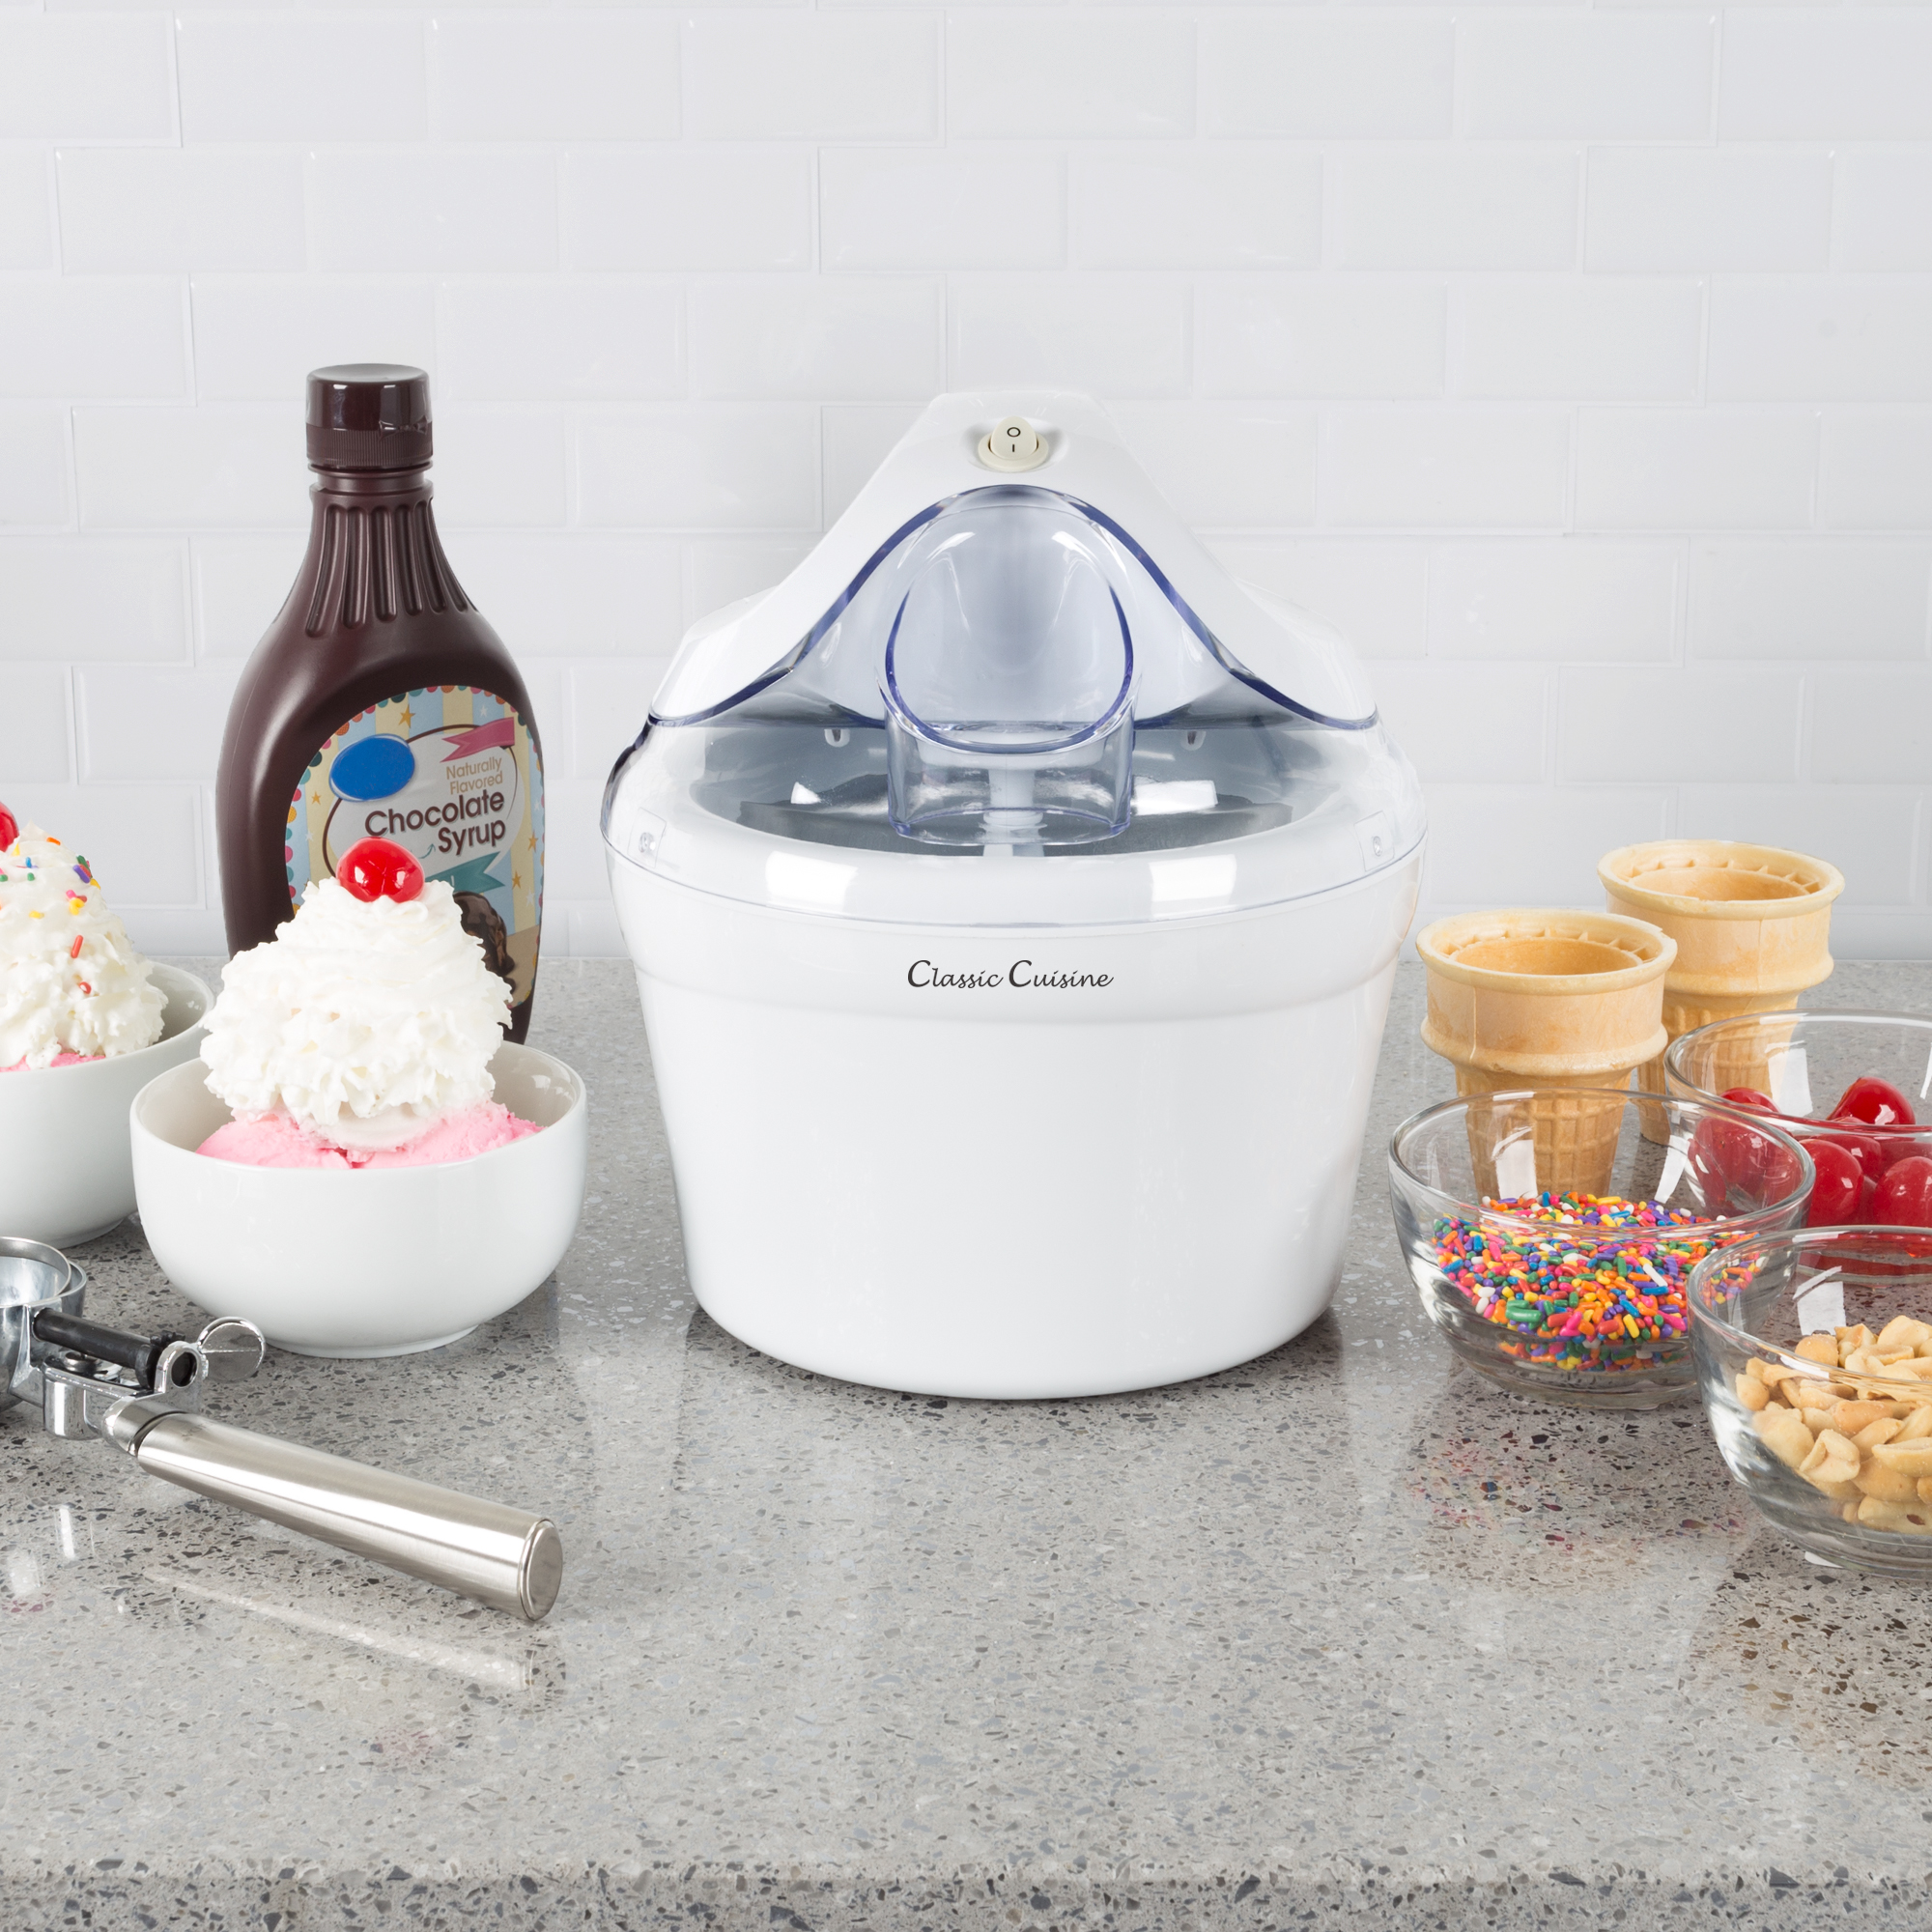 Ice Cream Maker- Also Makes Sorbet, Frozen Yogurt Dessert, 1 Quart Capacity Machine with Included Easy To Make Recipes by Classic Cuisine - White